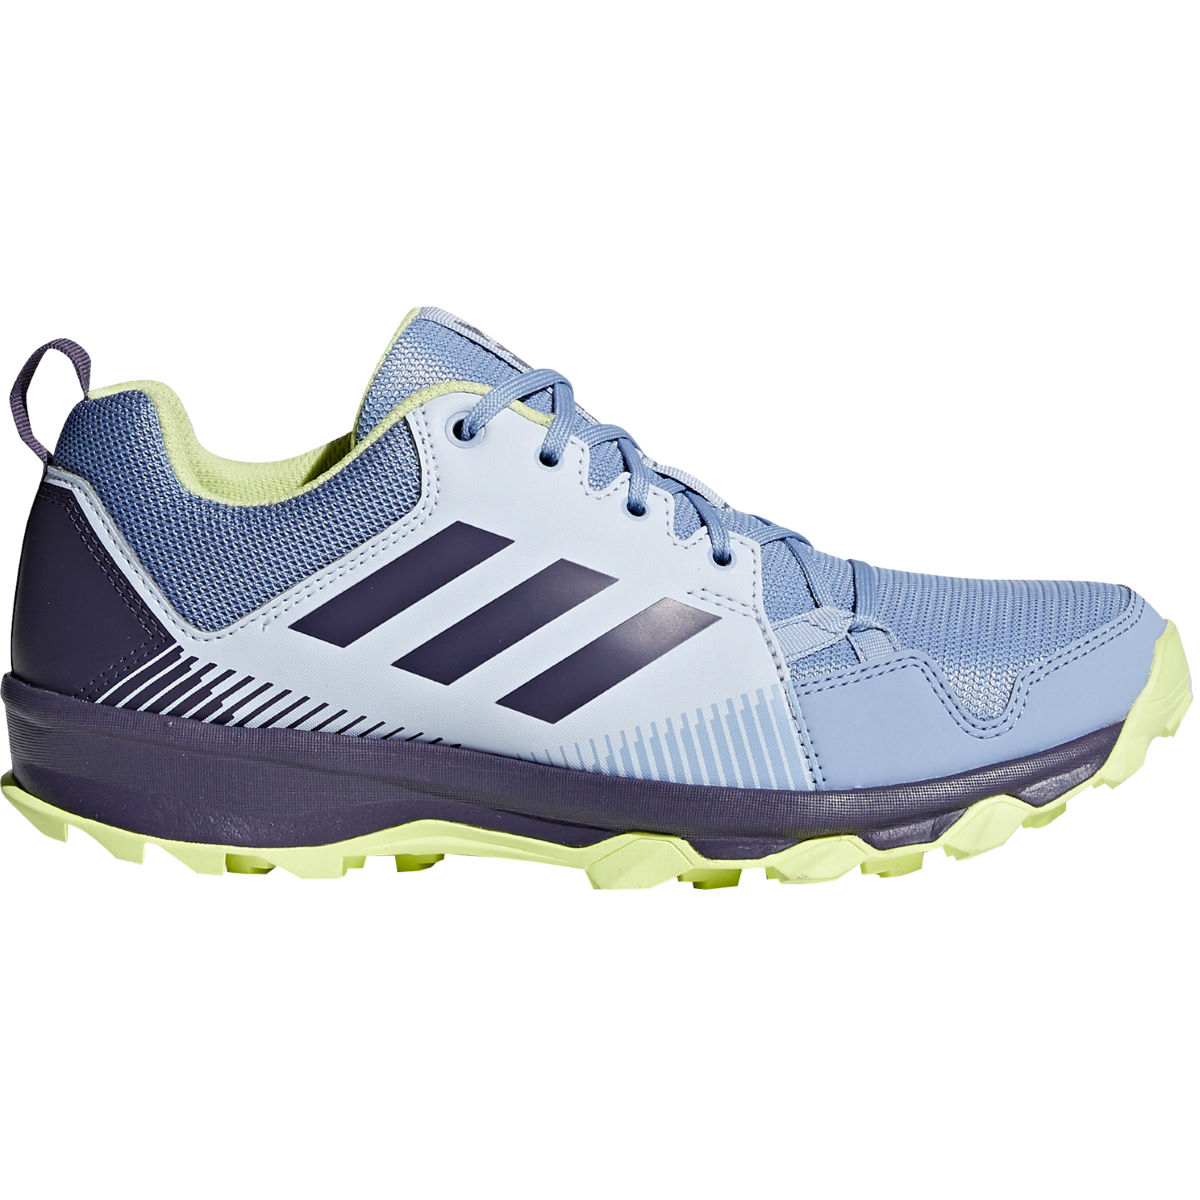 Chaussures Femme adidas Terrex Tracerocker - 5 AERO BLUE S18/TRACE